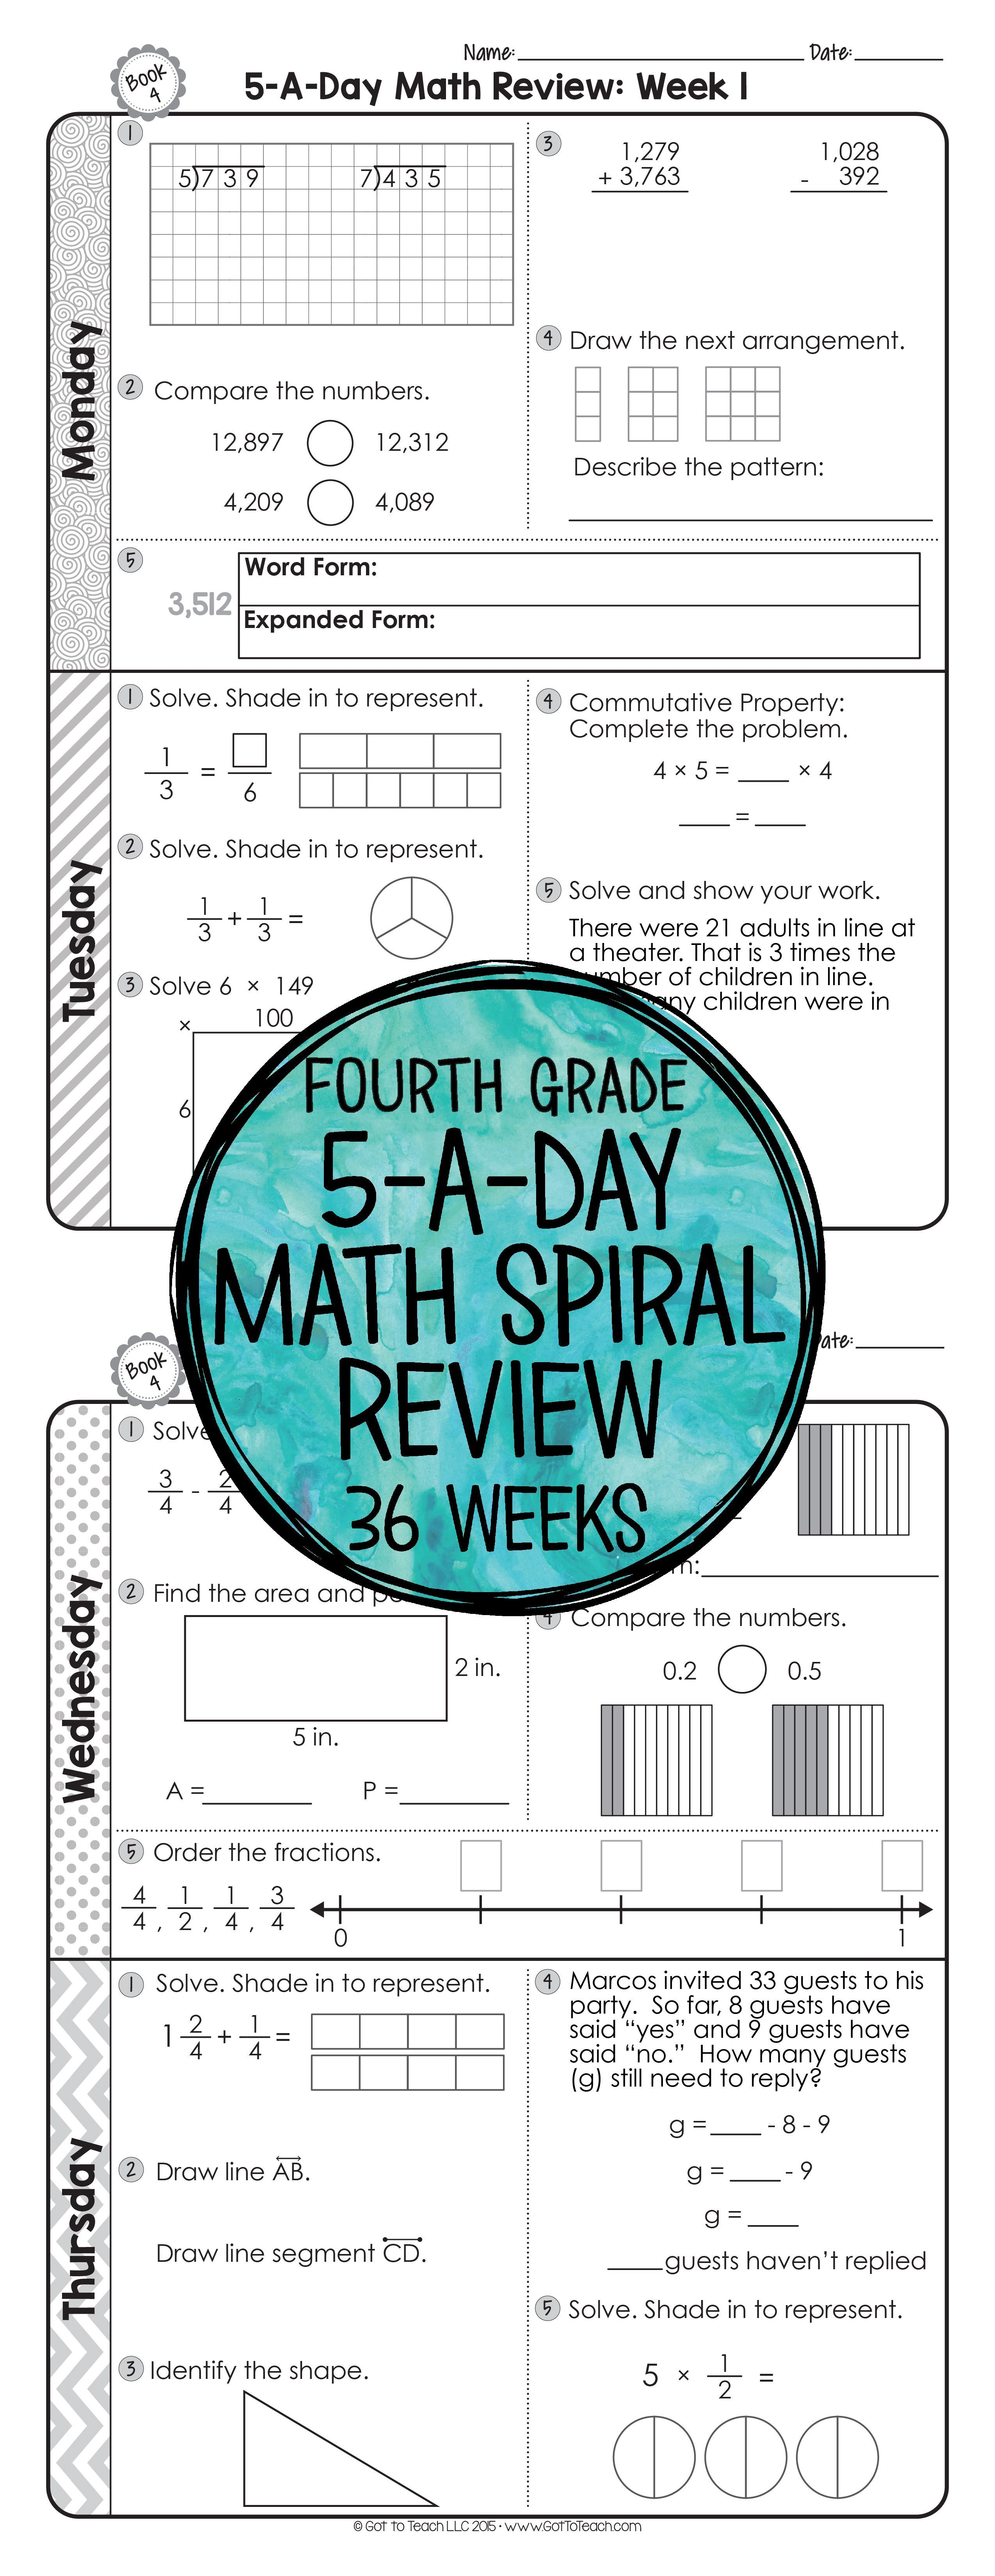 medium resolution of Spiral Math Worksheet   Printable Worksheets and Activities for Teachers